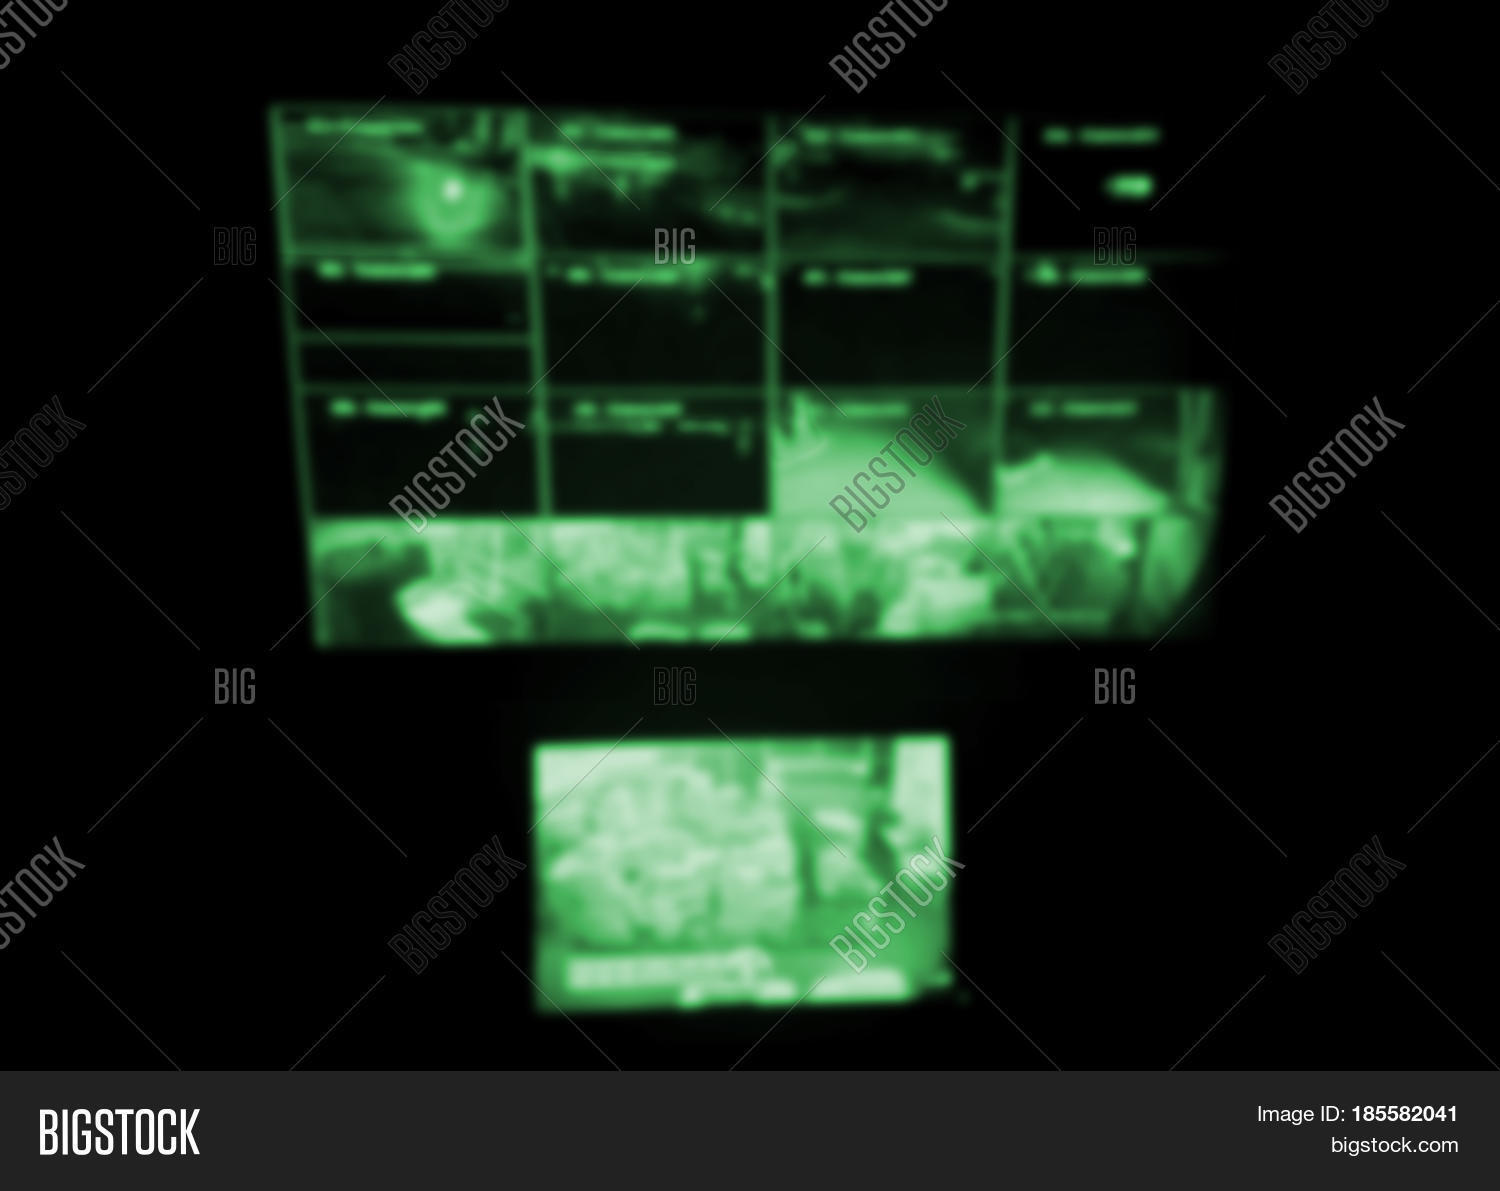 Blurred Photo Blurry Image Free Trial Bigstock Circuit Diagram Of Walkie Talkie Closed Camerasecurity System While